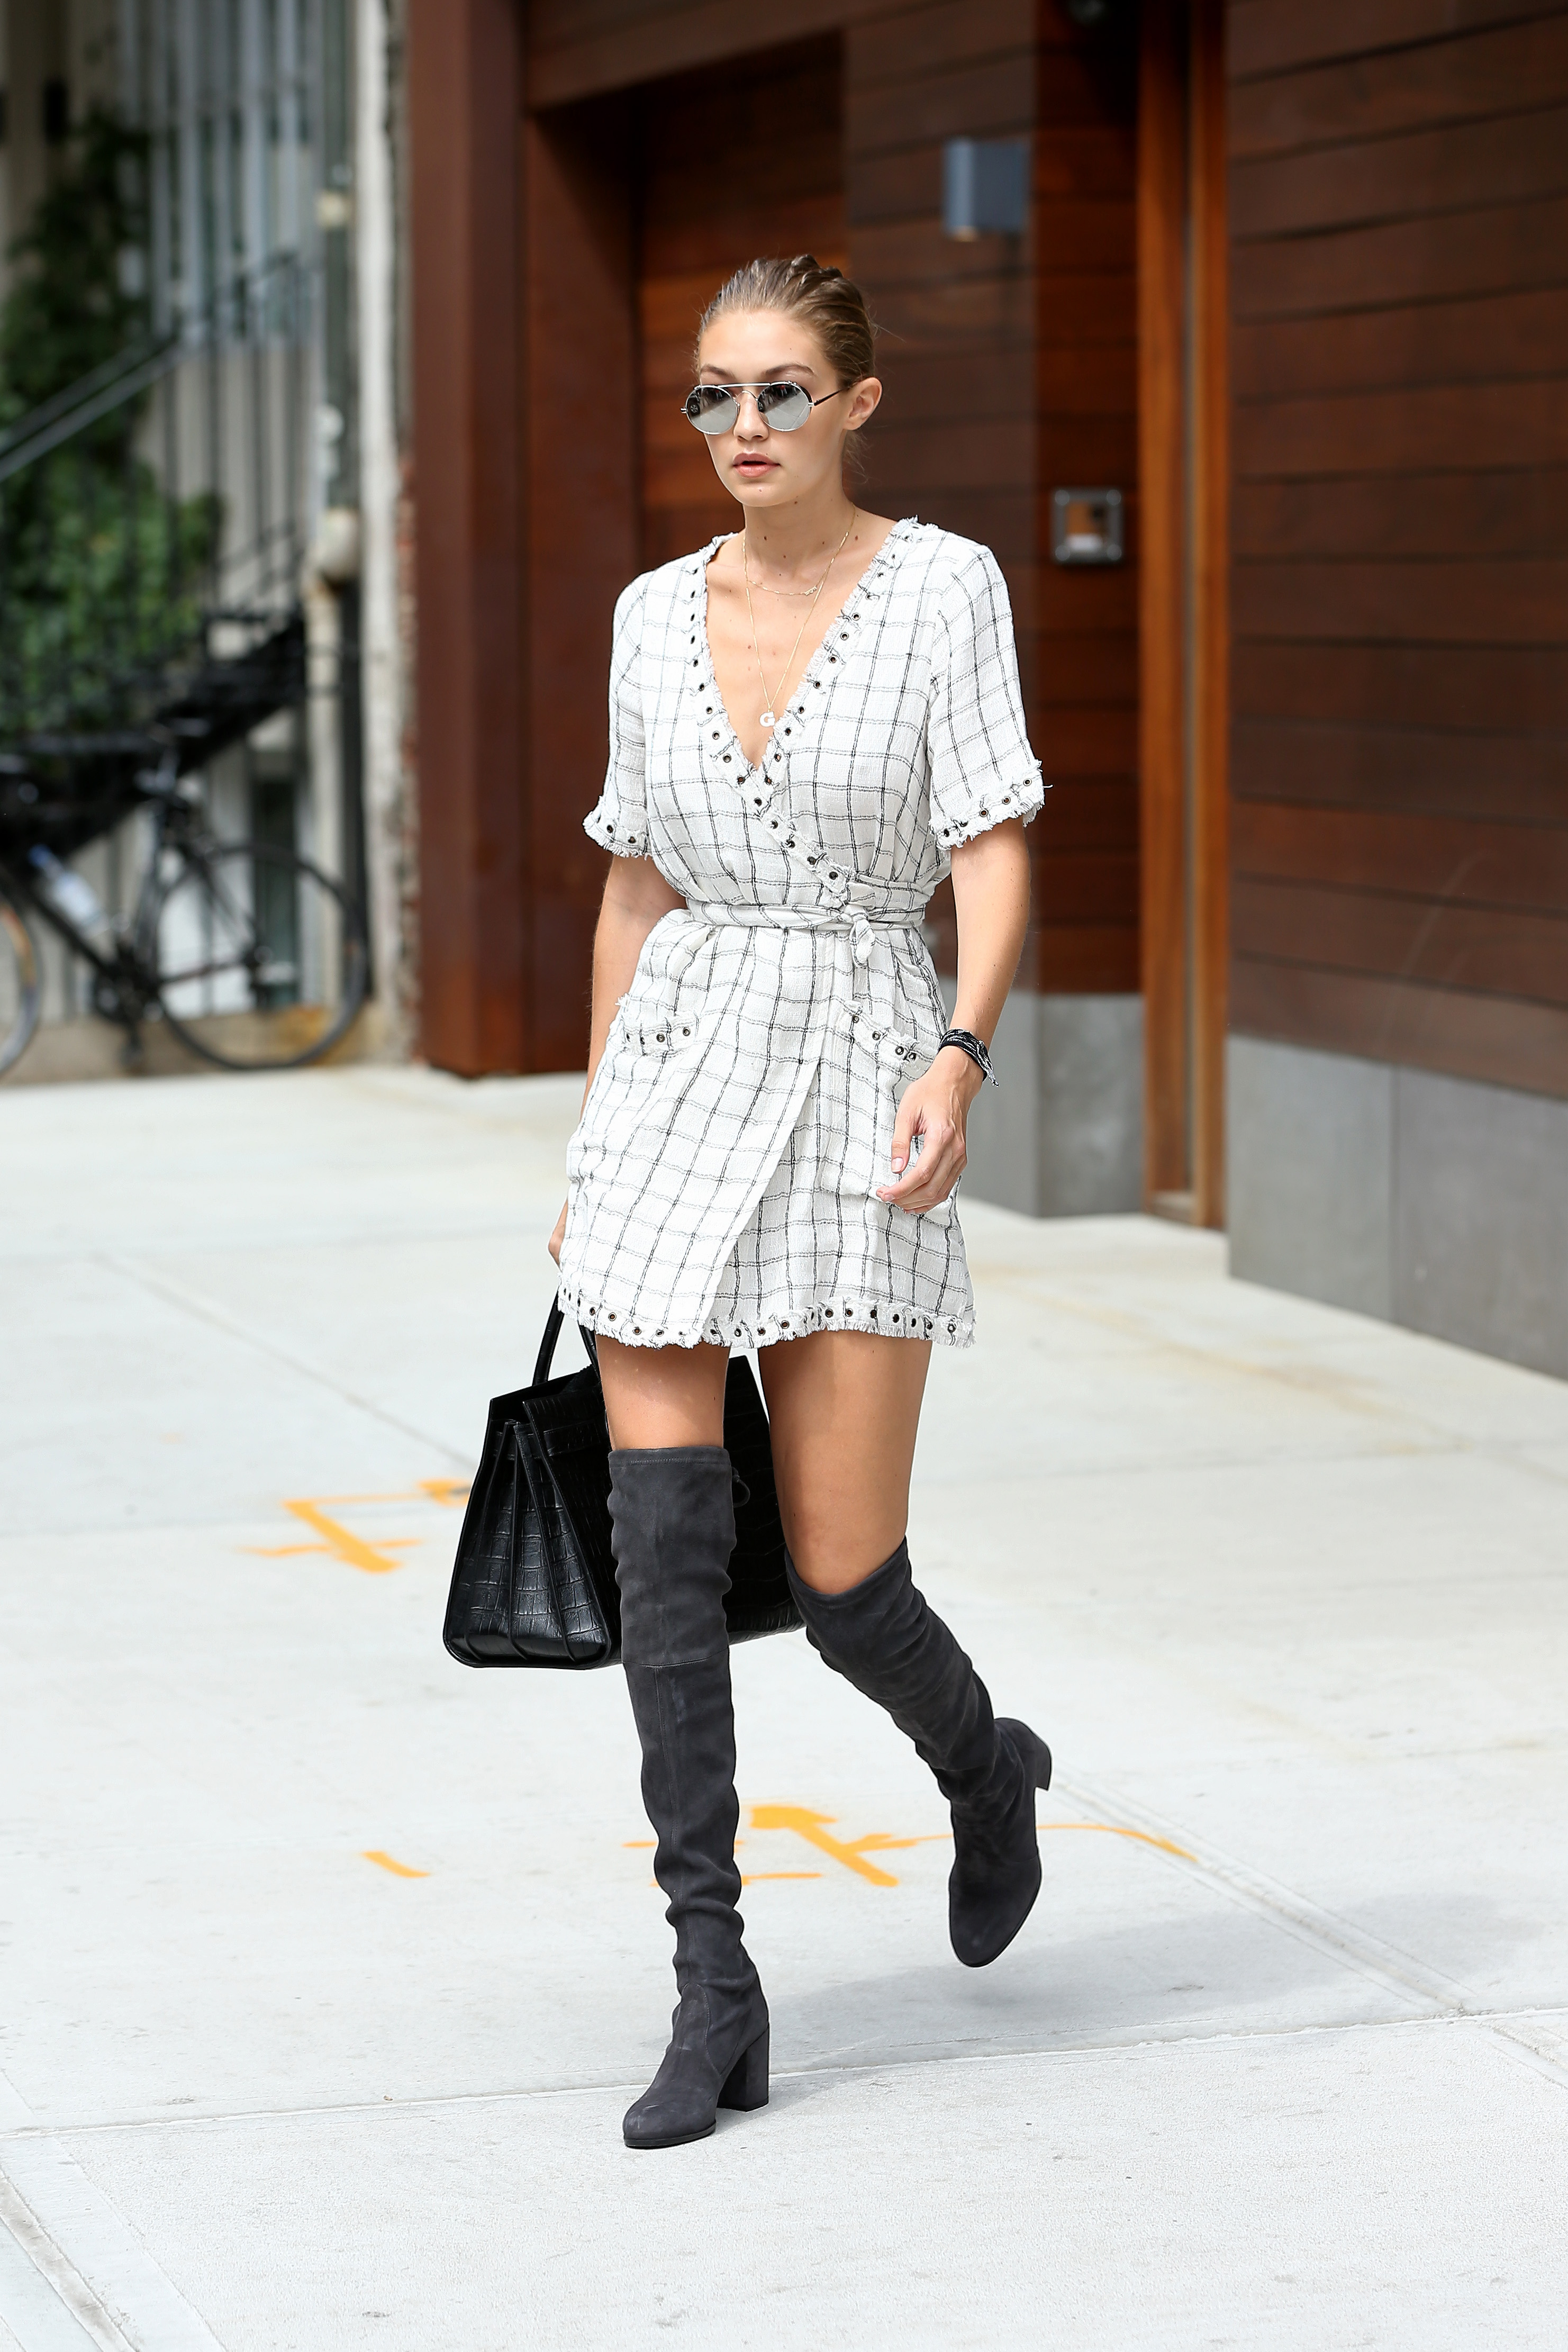 Model Gigi Hadid leaves her apartment in New York City, New York wearing a pinstriped shirt dress and knee high boots on September 5, 2016. <P> Pictured: Gigi Hadid <B>Ref: SPL1345859  050916  </B><BR/> Picture by: Christopher Peterson/Splash News<BR/> </P><P> <B>Splash News and Pictures</B><BR/> Los Angeles:310-821-2666<BR/> New York:212-619-2666<BR/> London:870-934-2666<BR/> <span id=